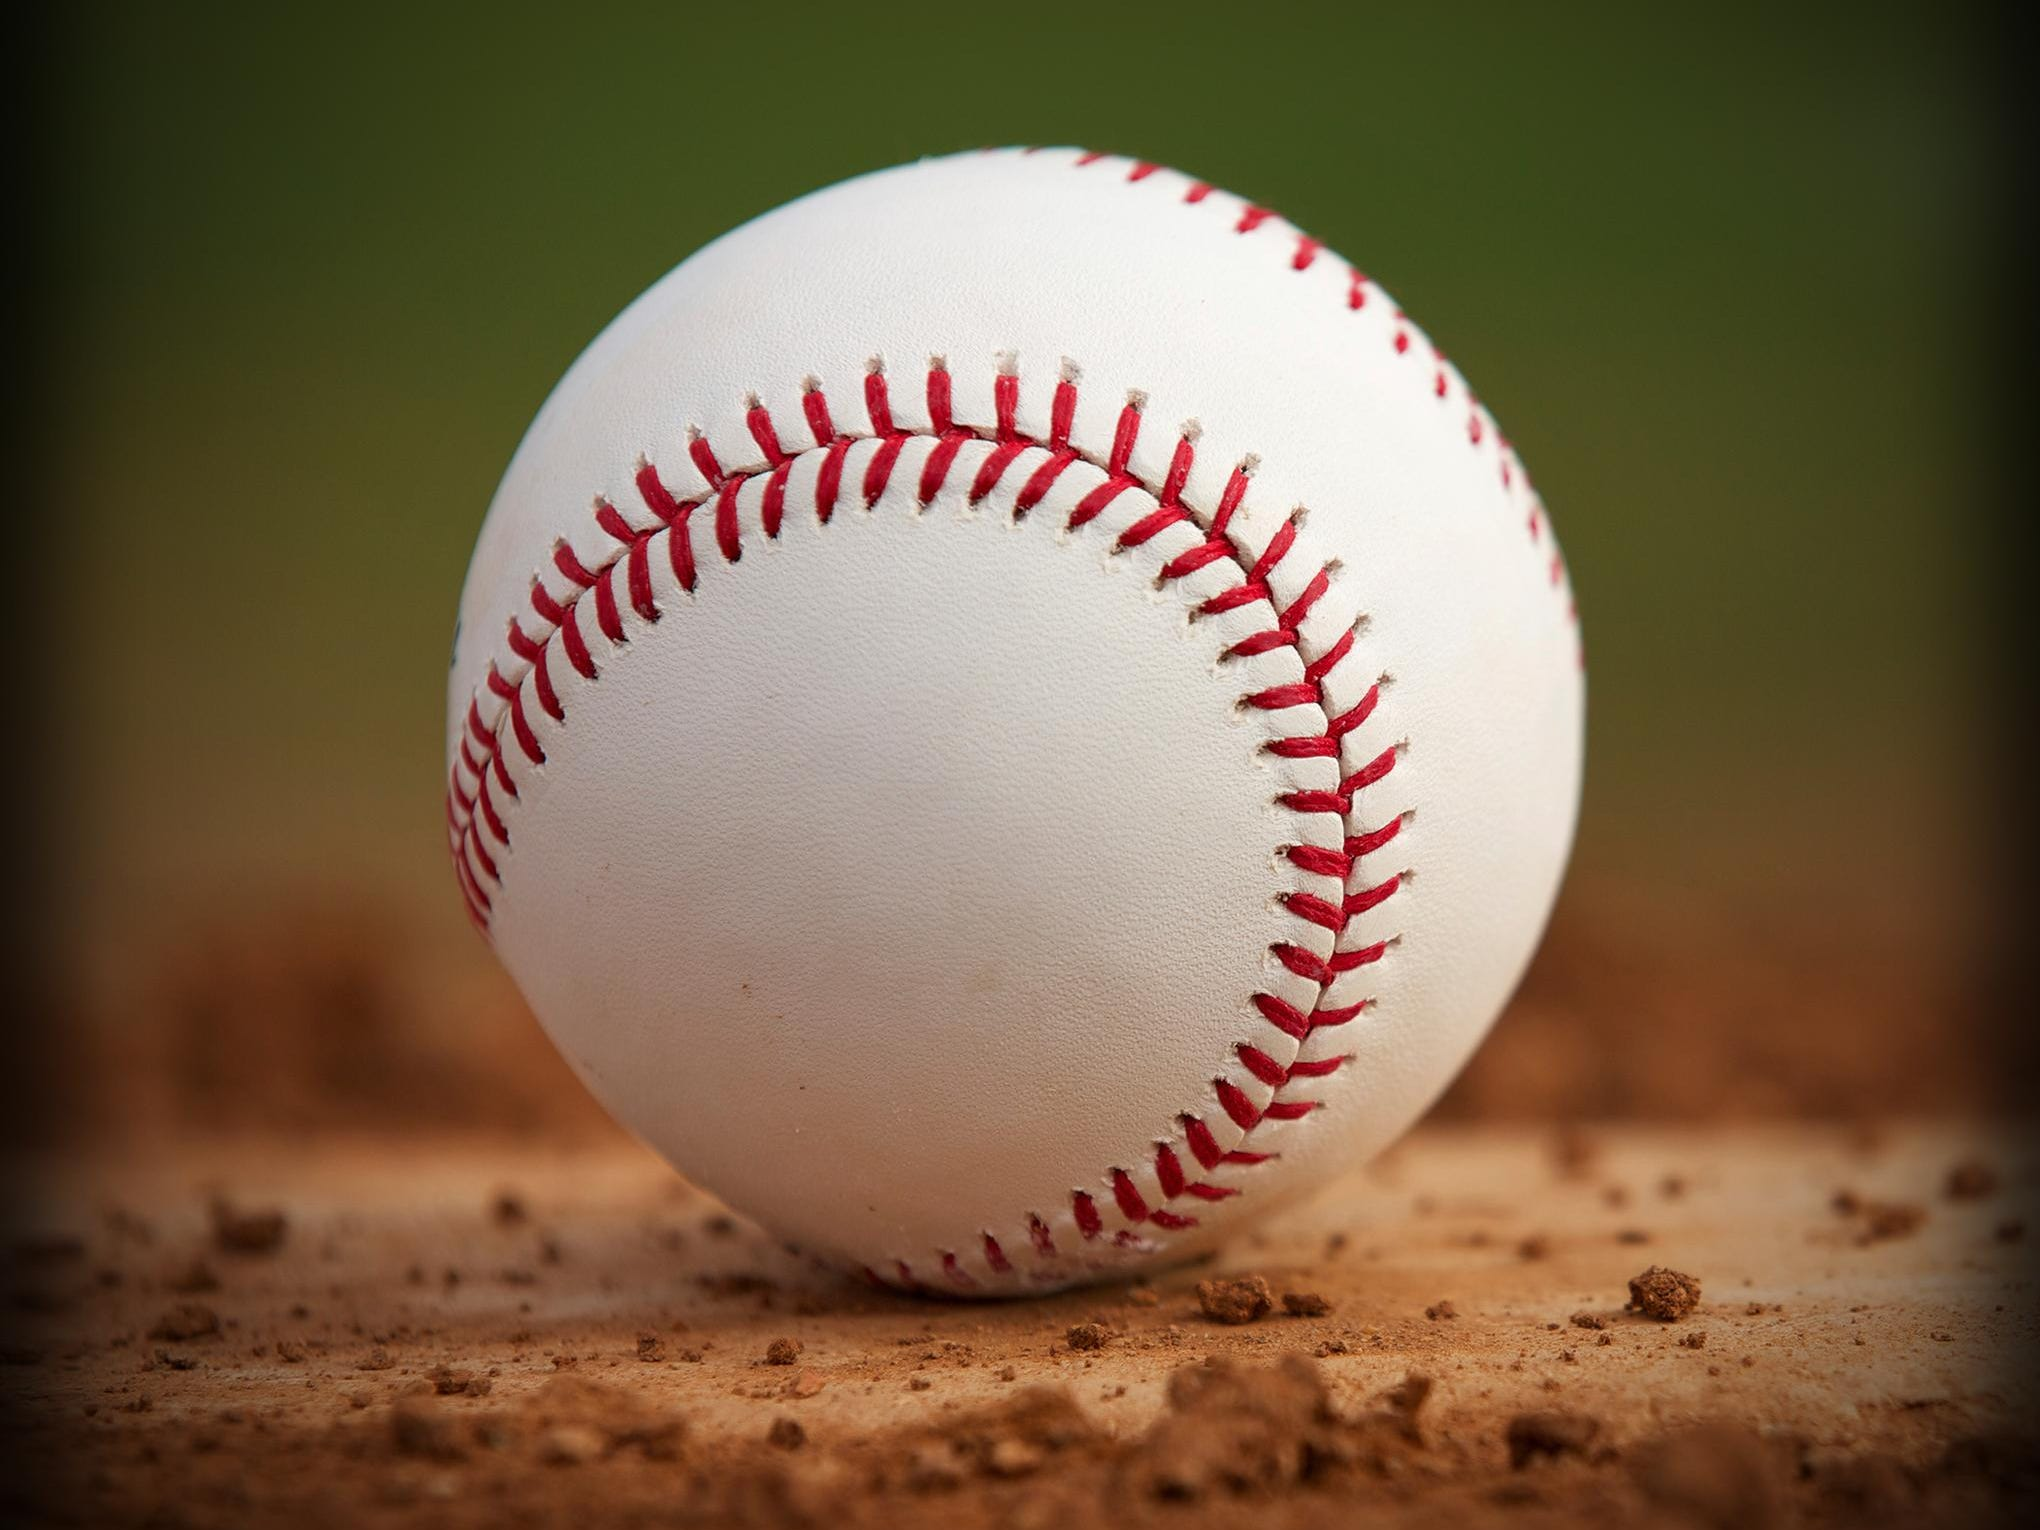 The Oshkosh Legion baseball continued its offensive success Friday night as it picked up a 15-2 win in five innings over the Green Bay Shockers.